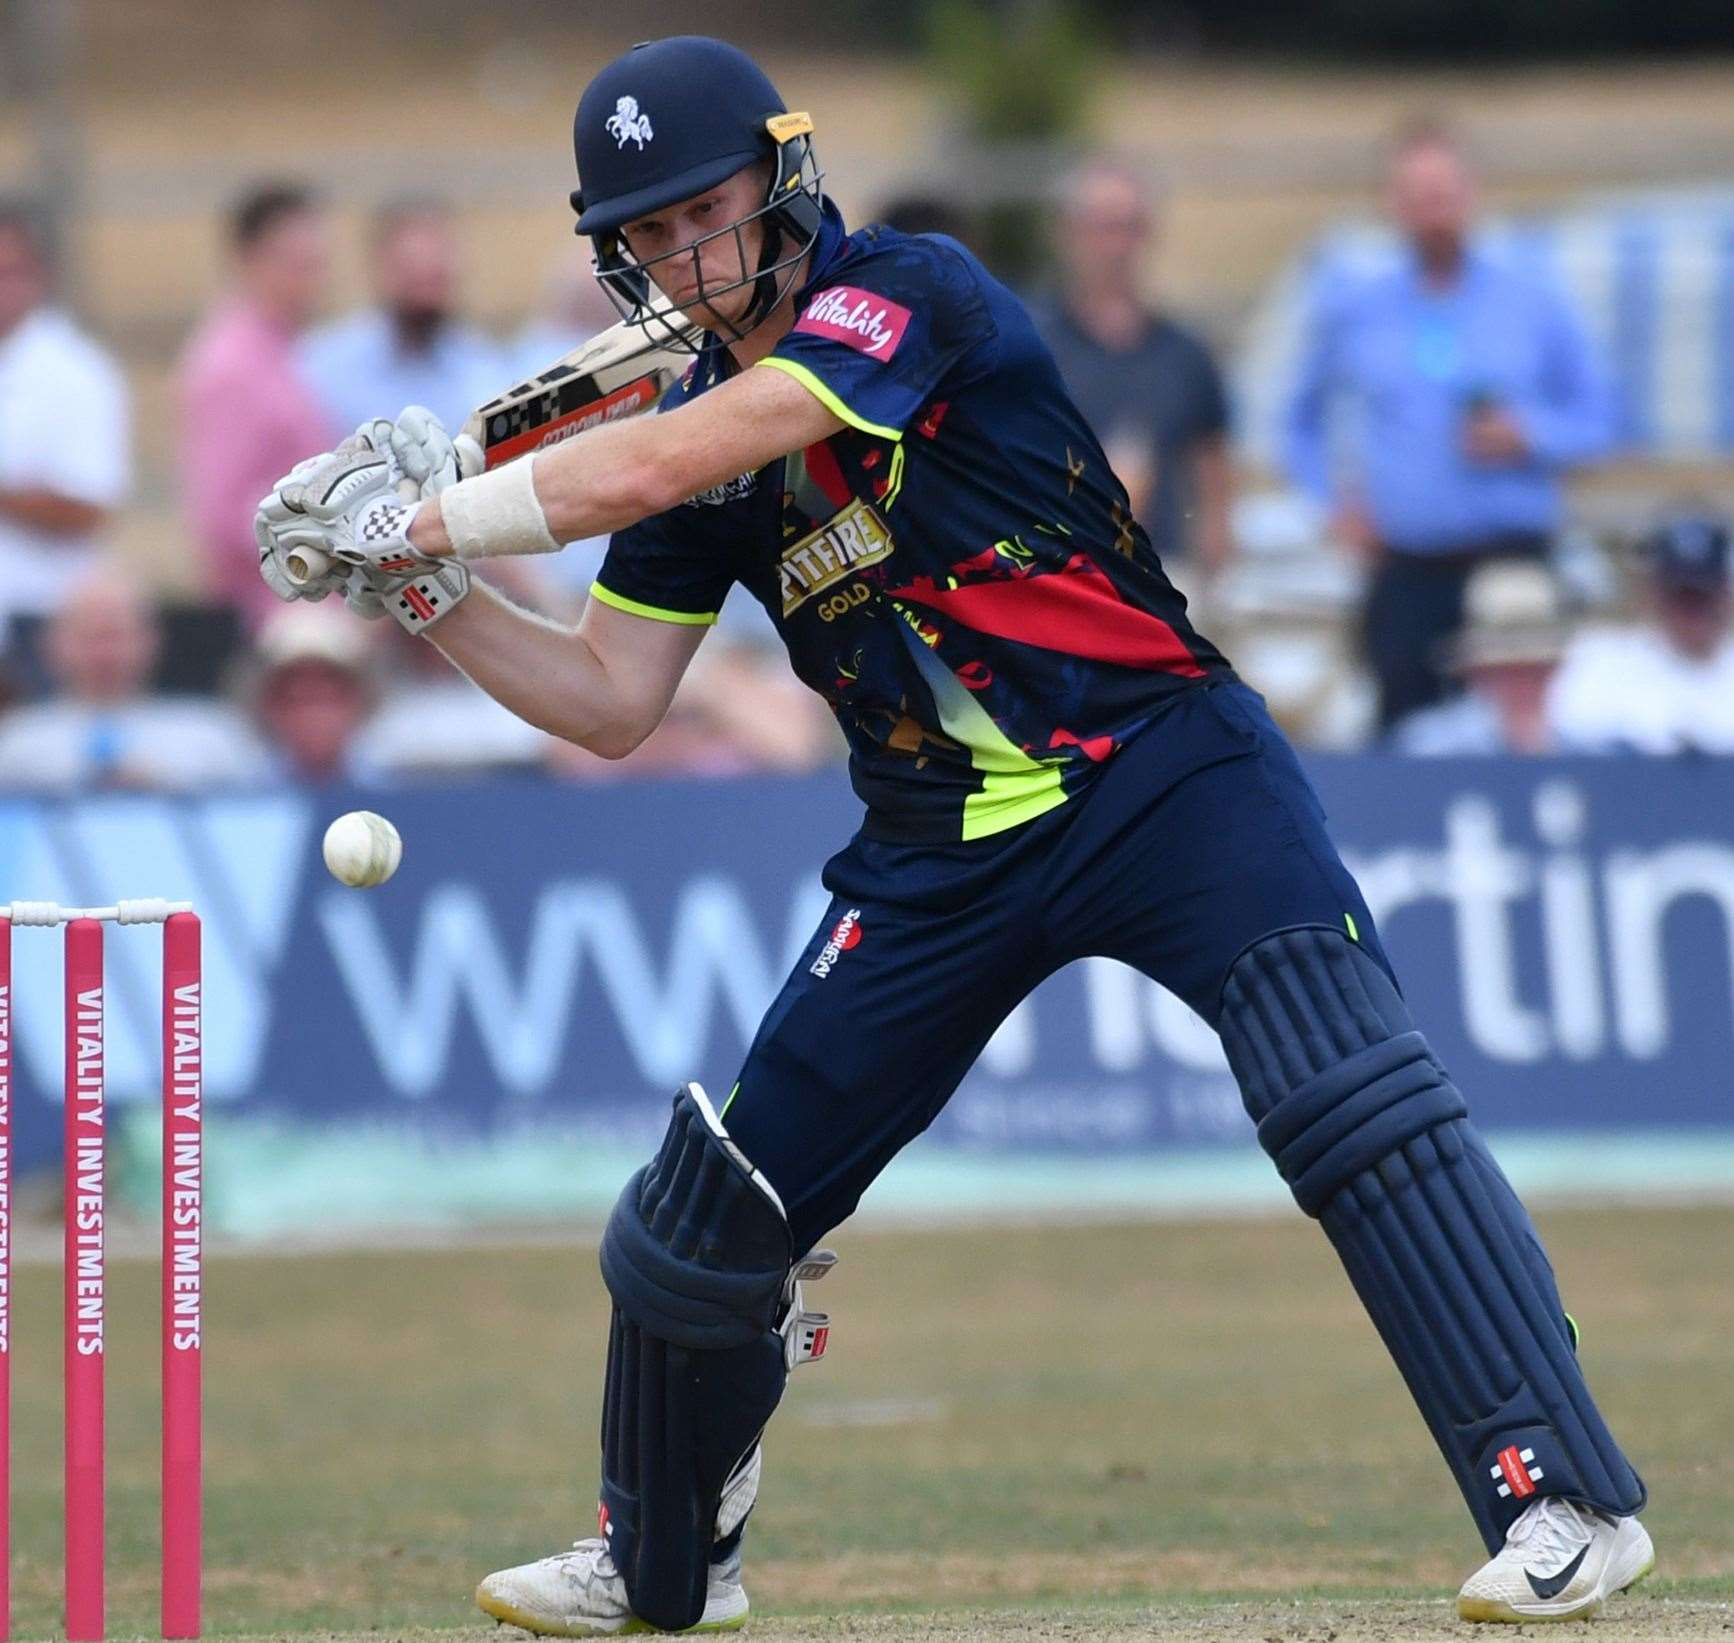 Kent's Sam Billings hit a career-best 87 for England Picture: Keith Gillard